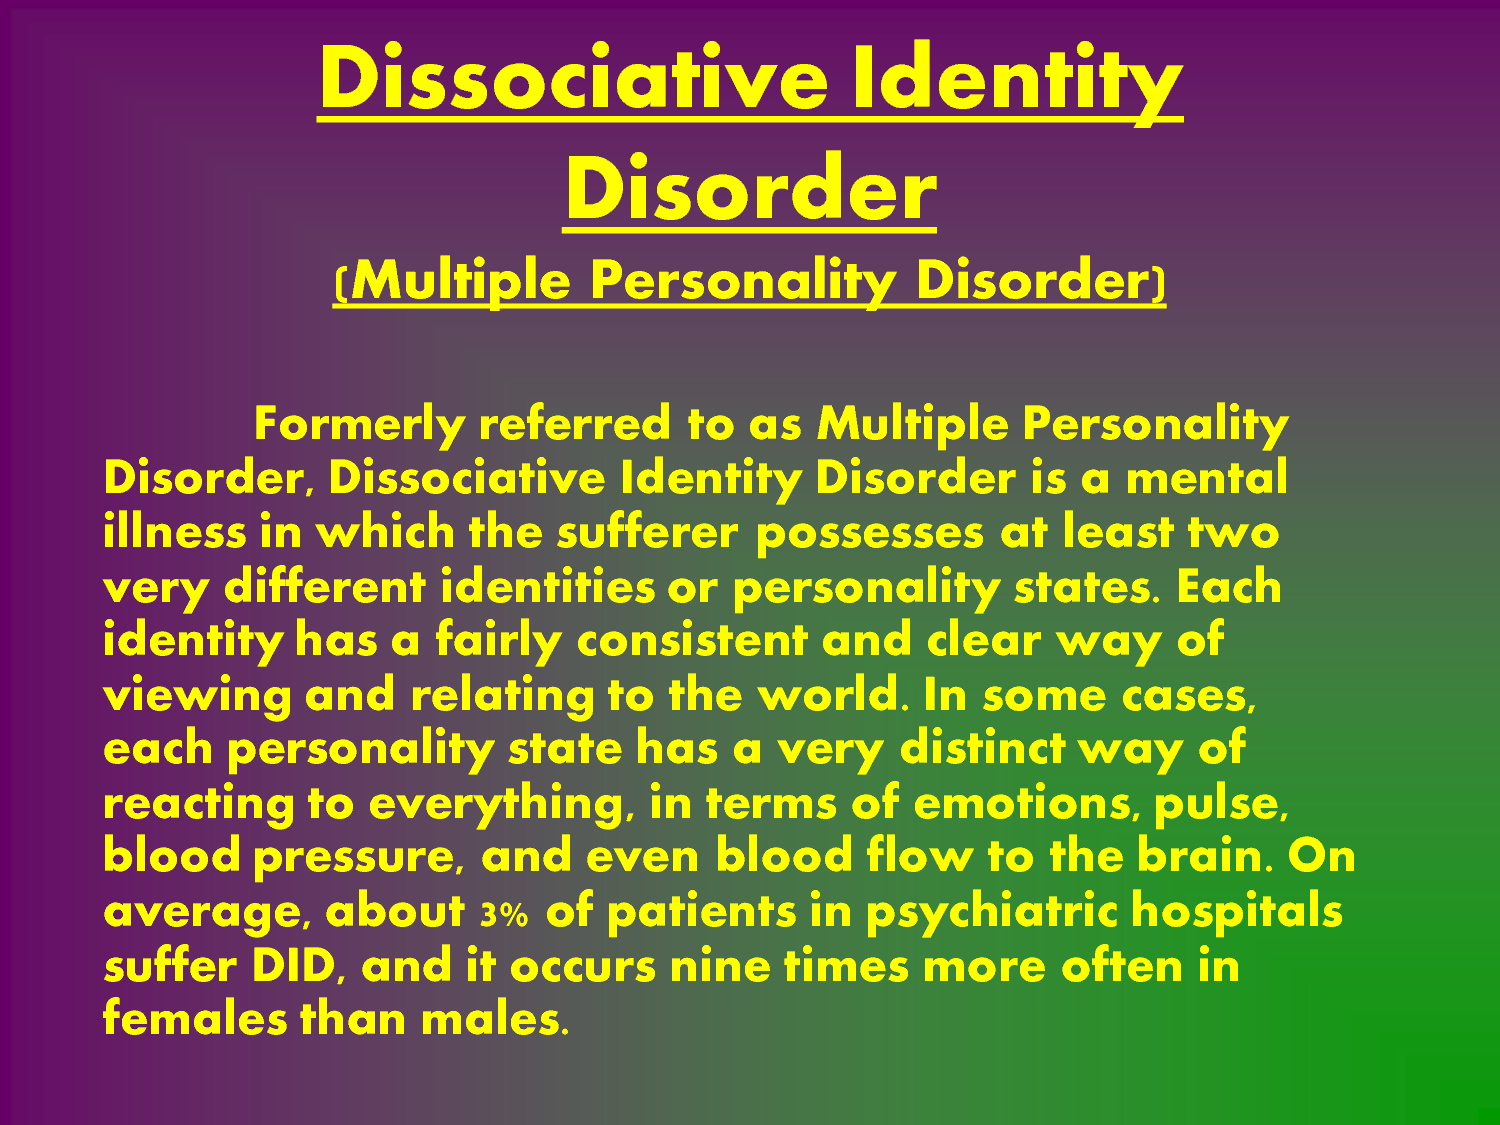 multiple personality disorder mpd Multiple personality disorder (mpd) is a psychiatric disorder characterized by having at least one alter personality that controls behavior the alters are.